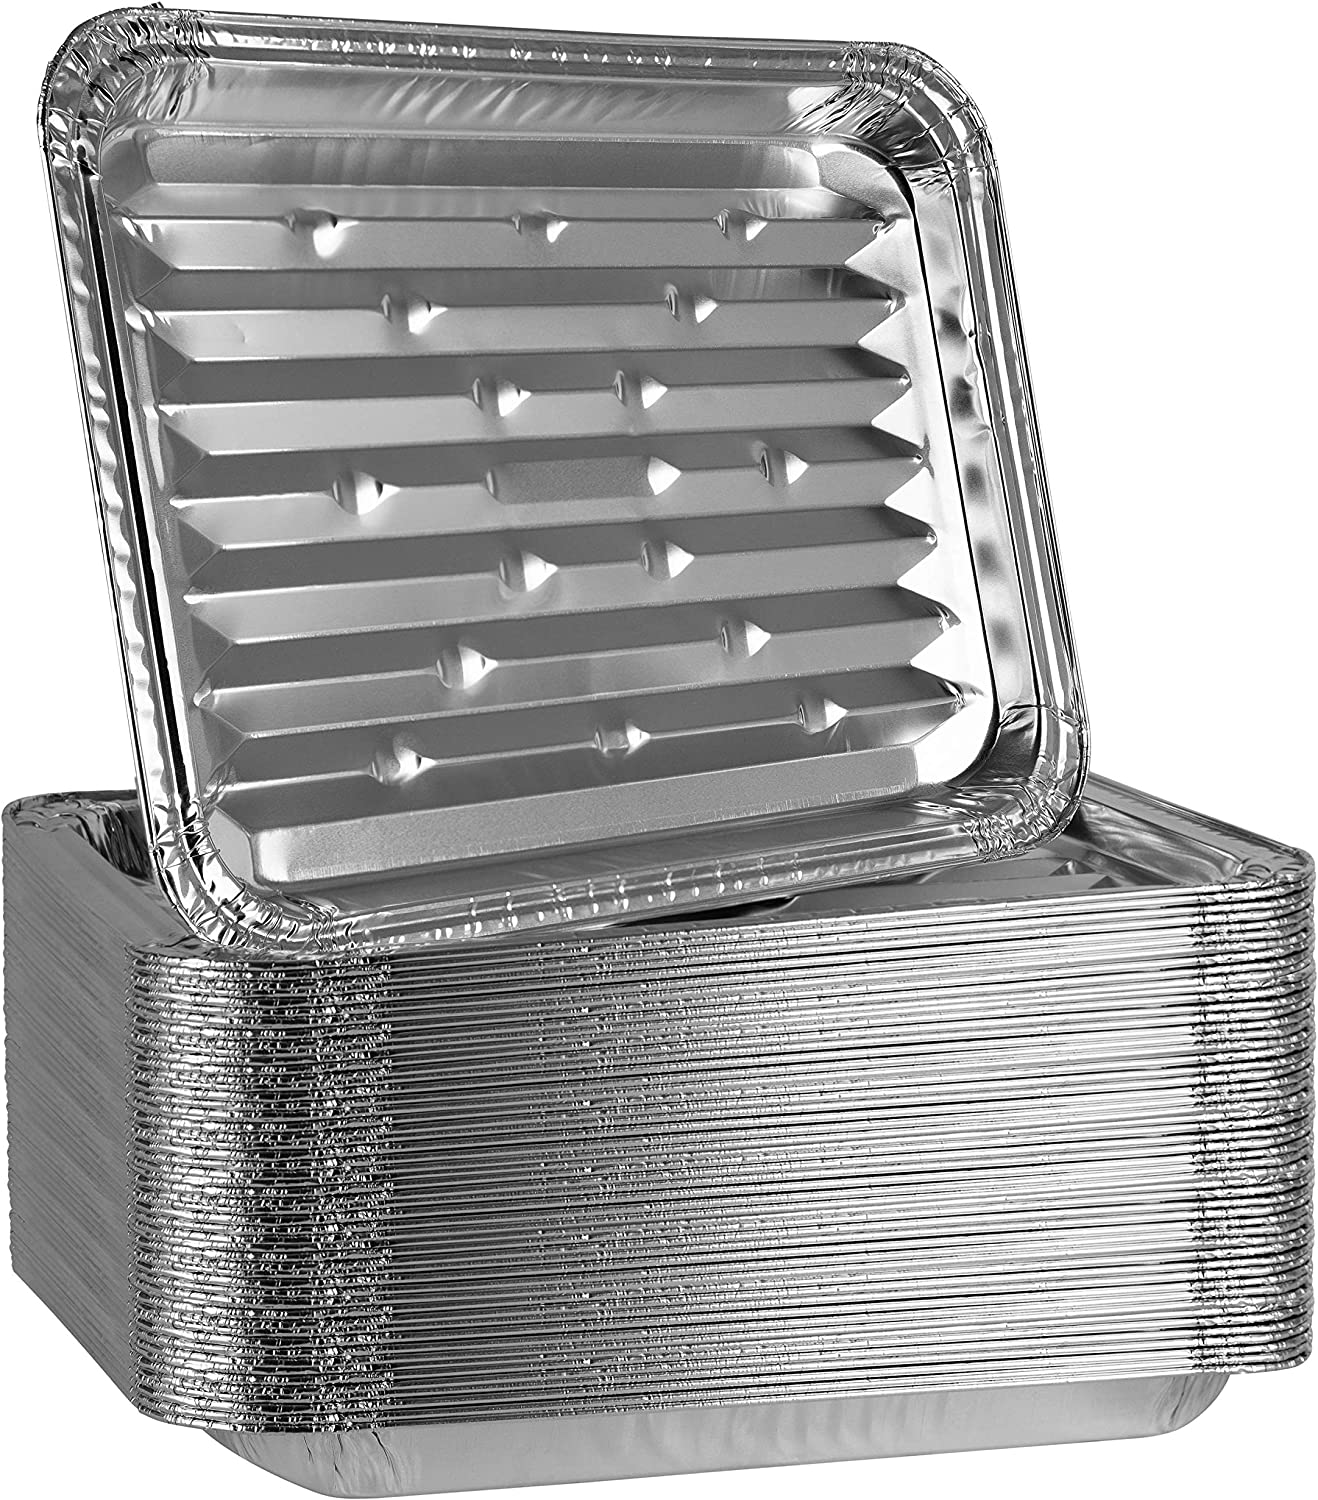 Plasticpro Aluminum Grill Pans, Broiler Pans, Grill Liners, Durable with Ribbed Bottom Surface for BBQ, Grill, Texture Disposable,Pack of 20: Kitchen & Dining